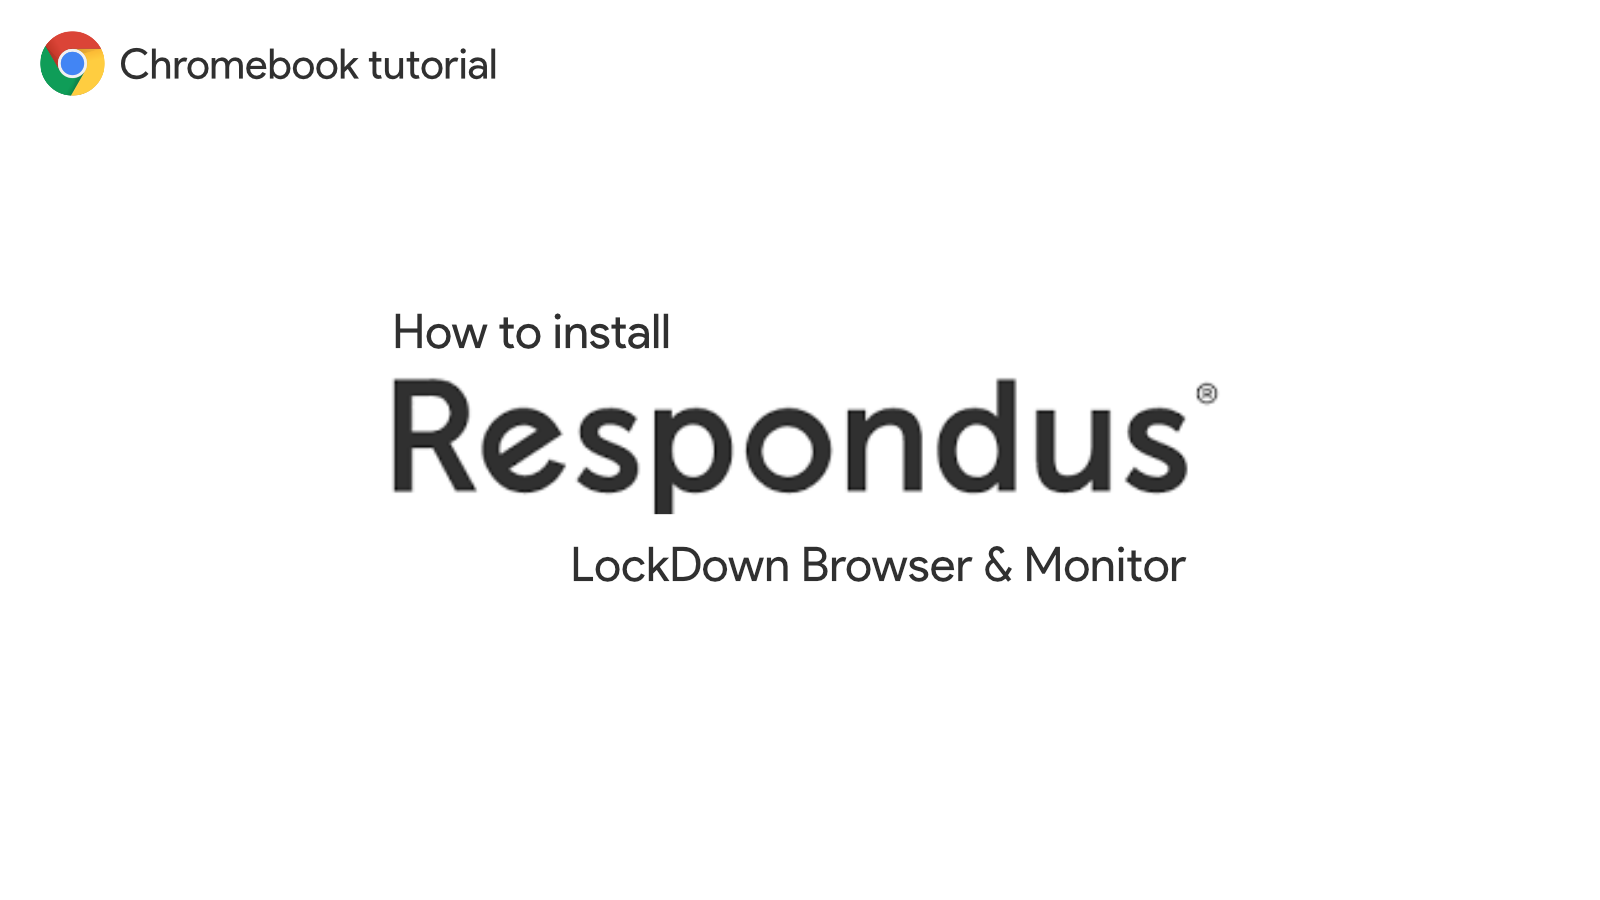 How to install Respondus LockDown Browser and Monitor on a Chromebook